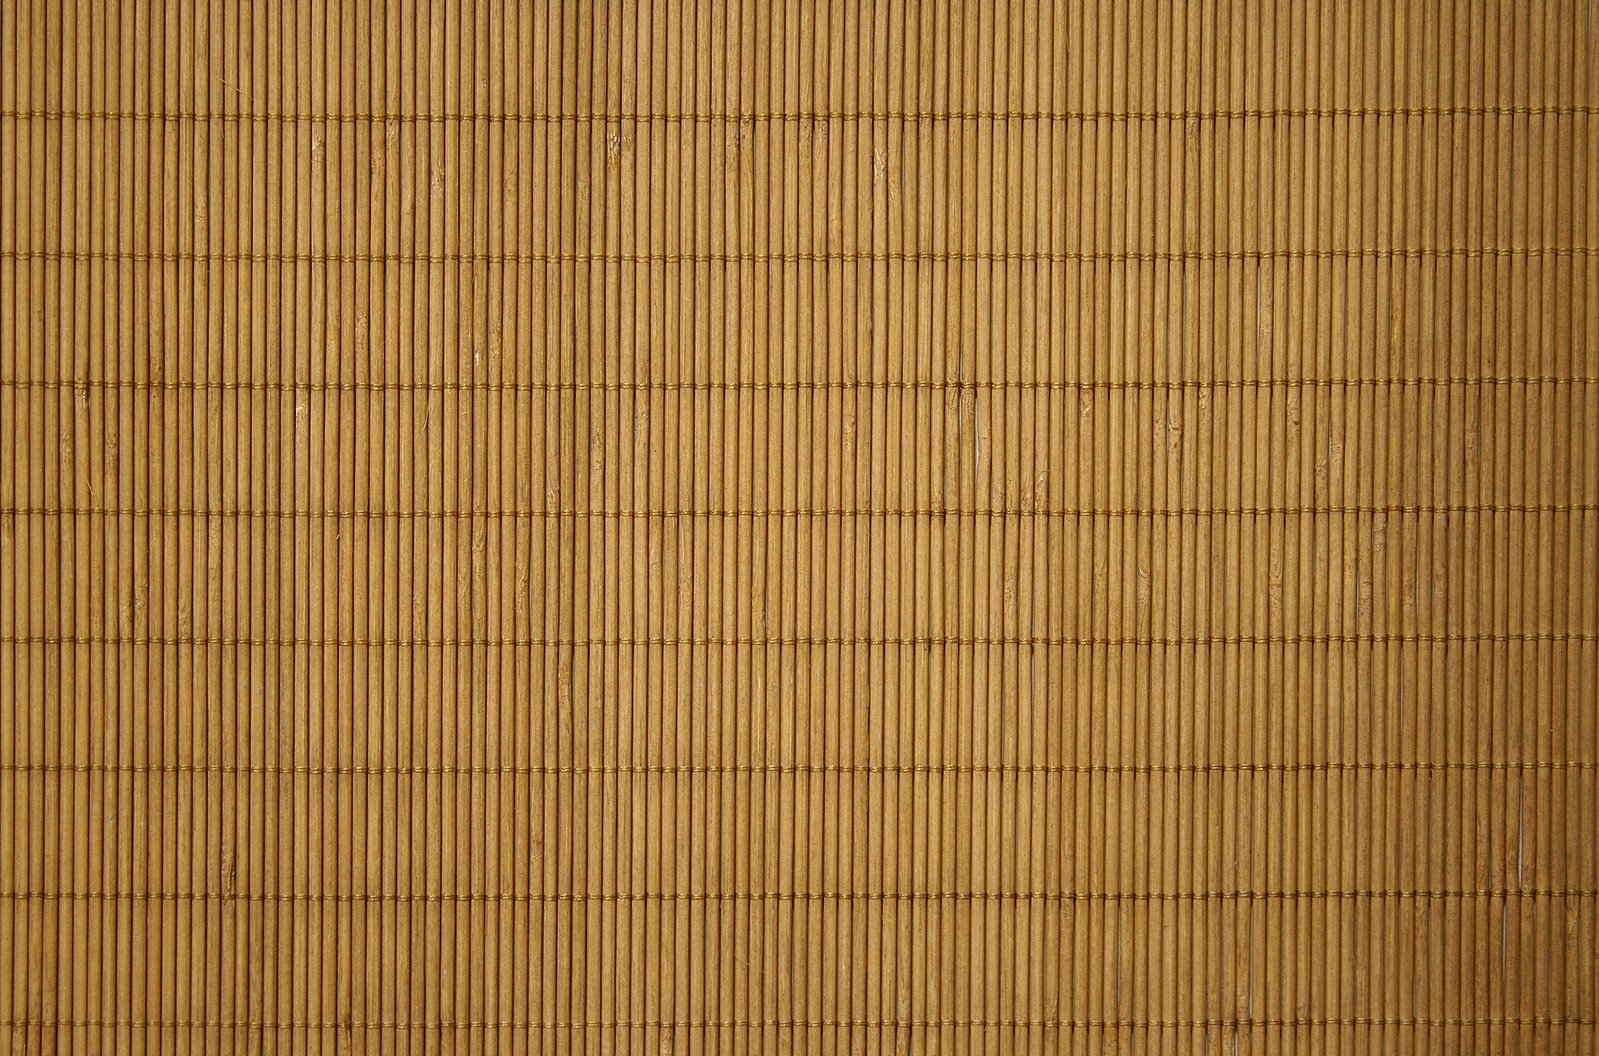 Free Bamboo Texture Stock Photo Freeimages Com